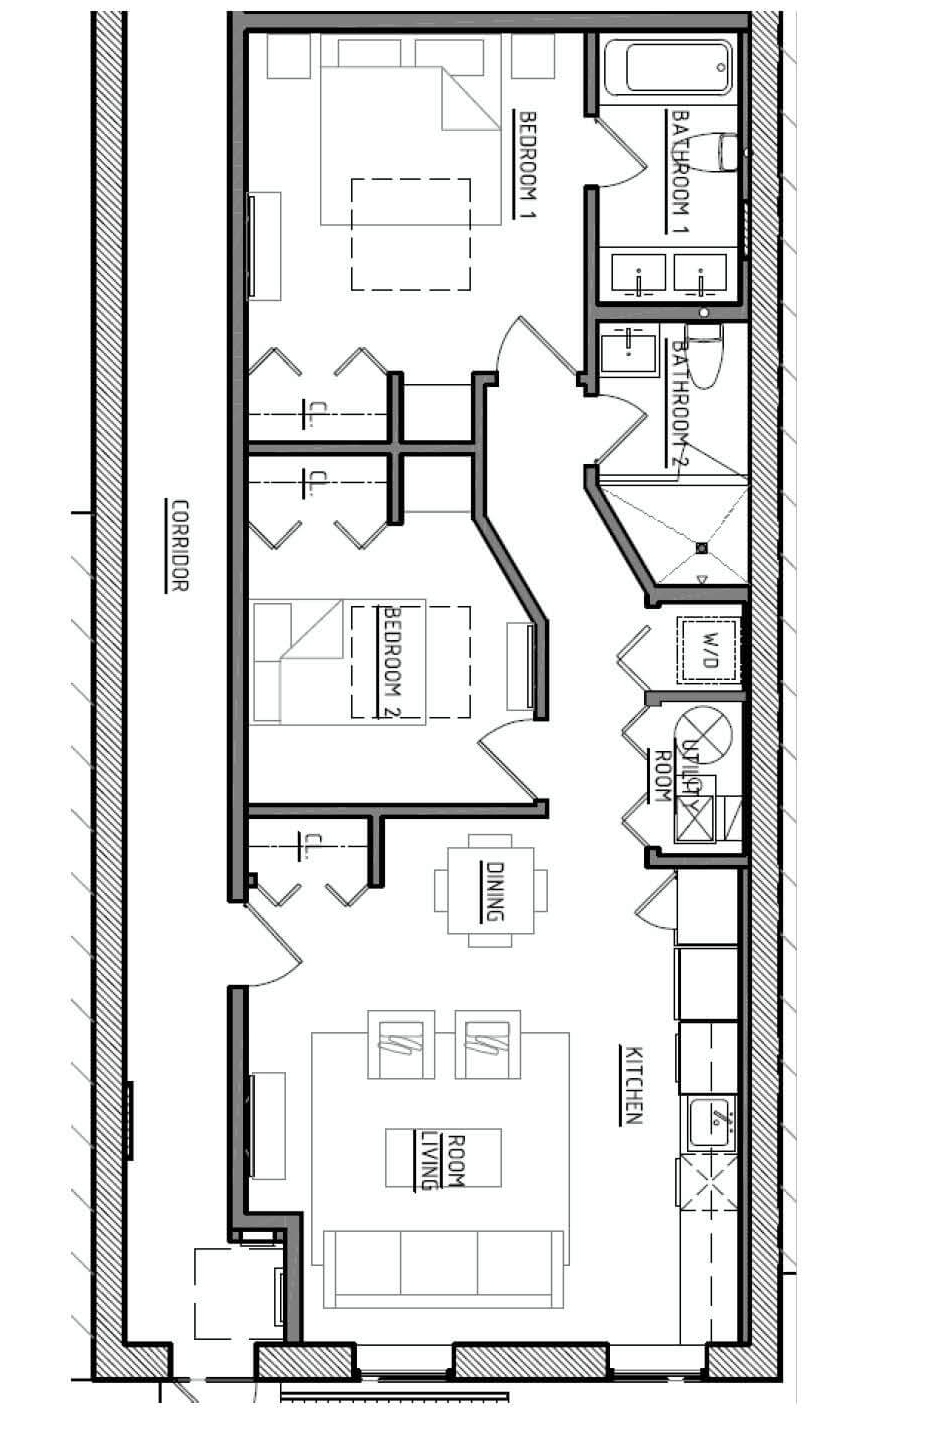 chicago-apartment-for-rent-2R-Floorplan-1625-N-Milwaukee.jpg